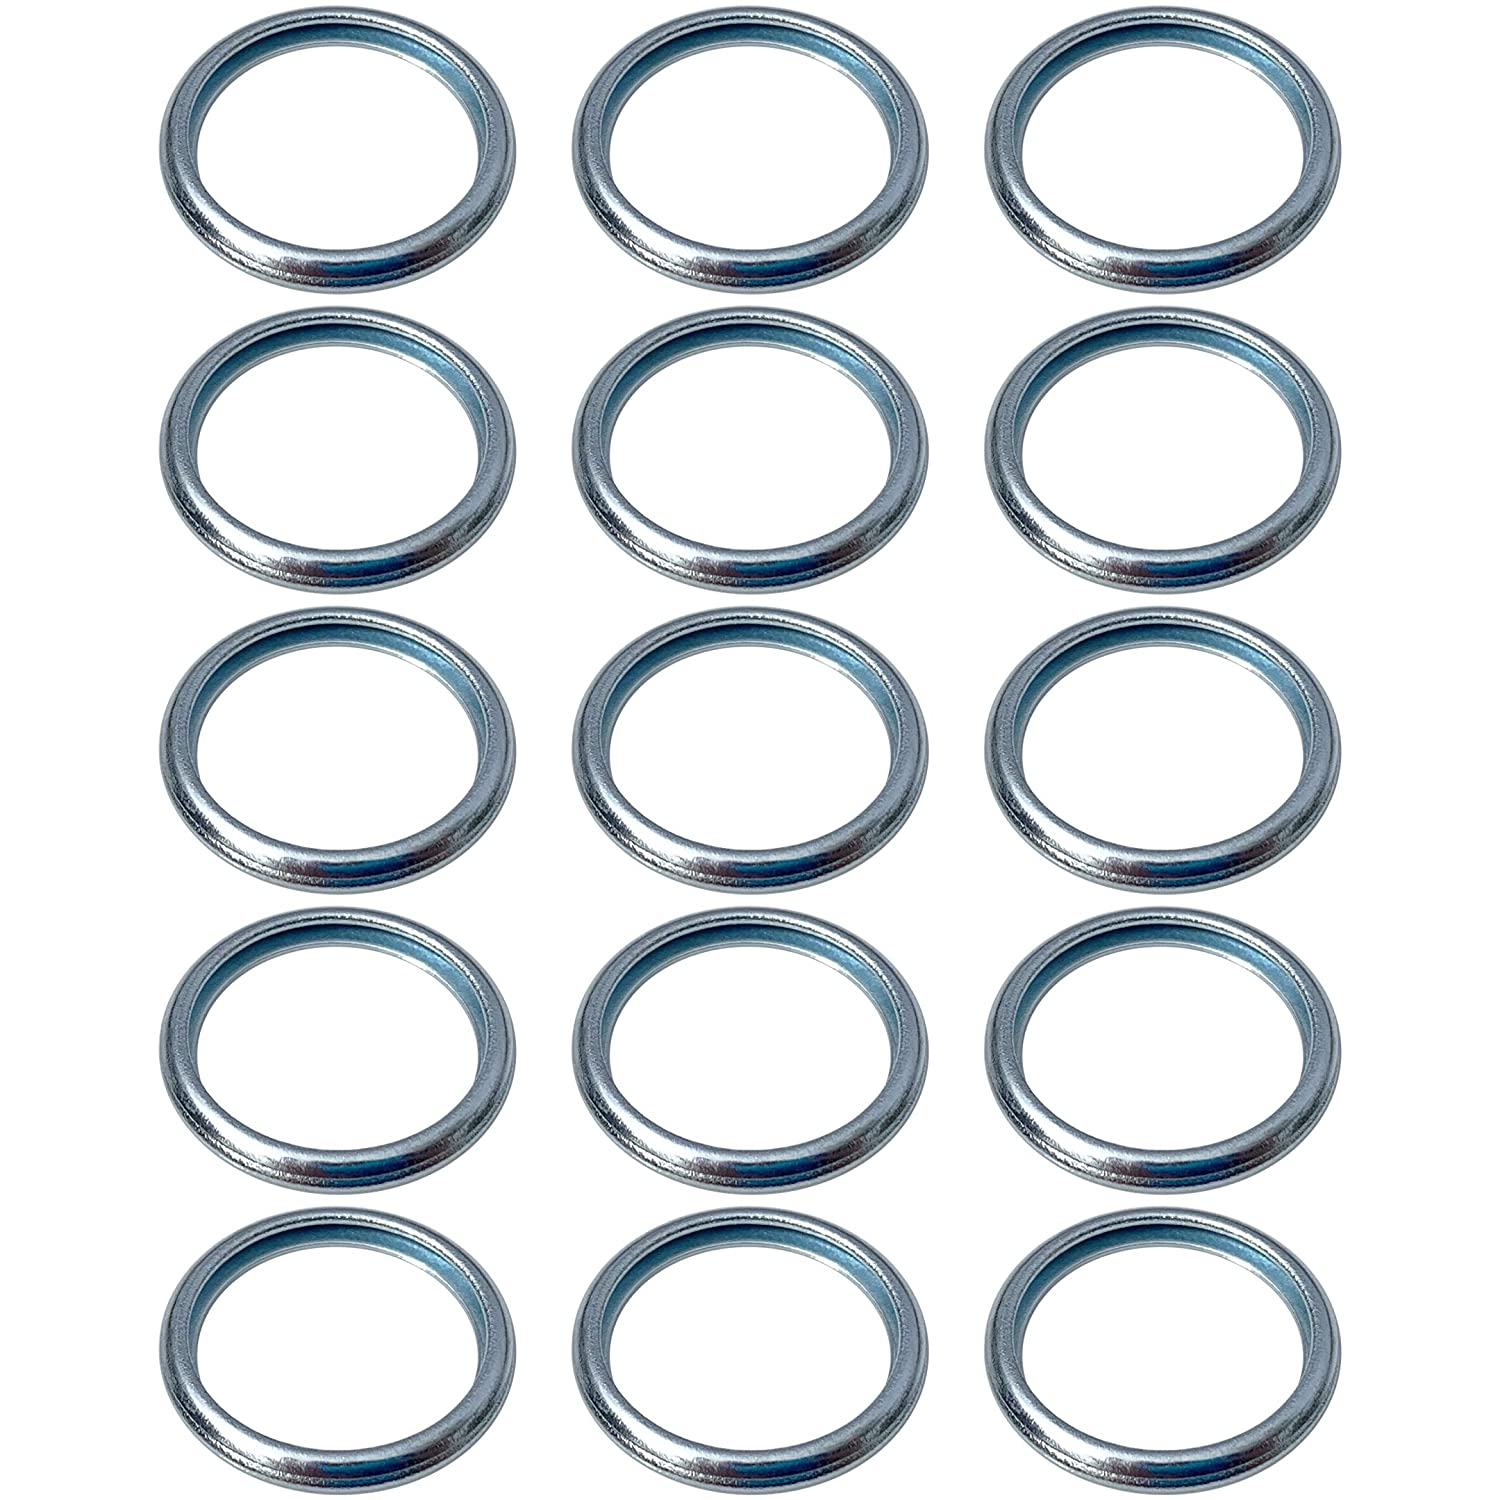 Pack of 15 Prime Ave OEM Engine Oil Drain Plug Washer Gaskets For Subaru Part# 803916010